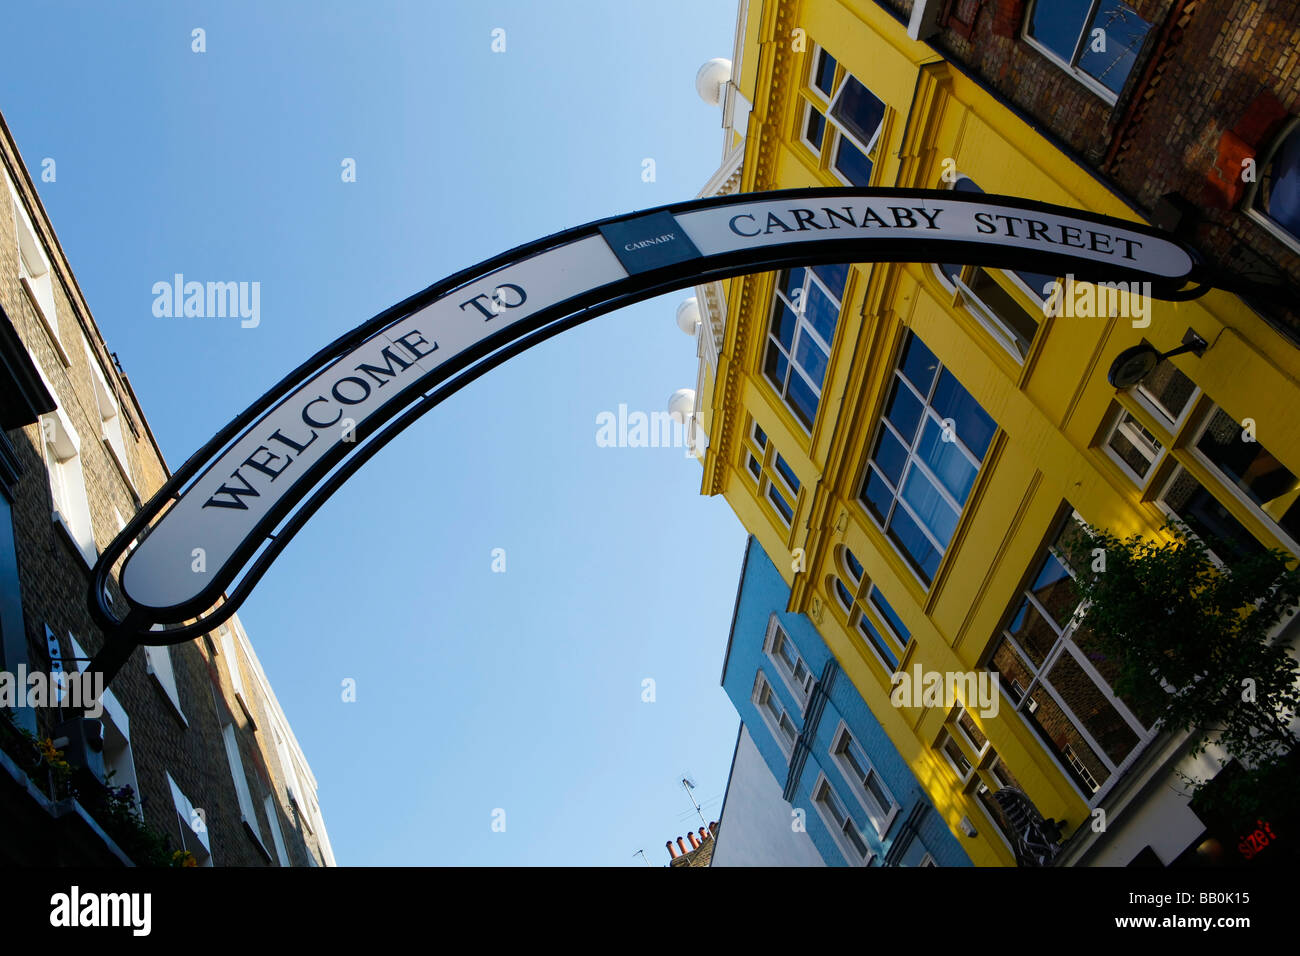 Carnaby Street in London. - Stock Image